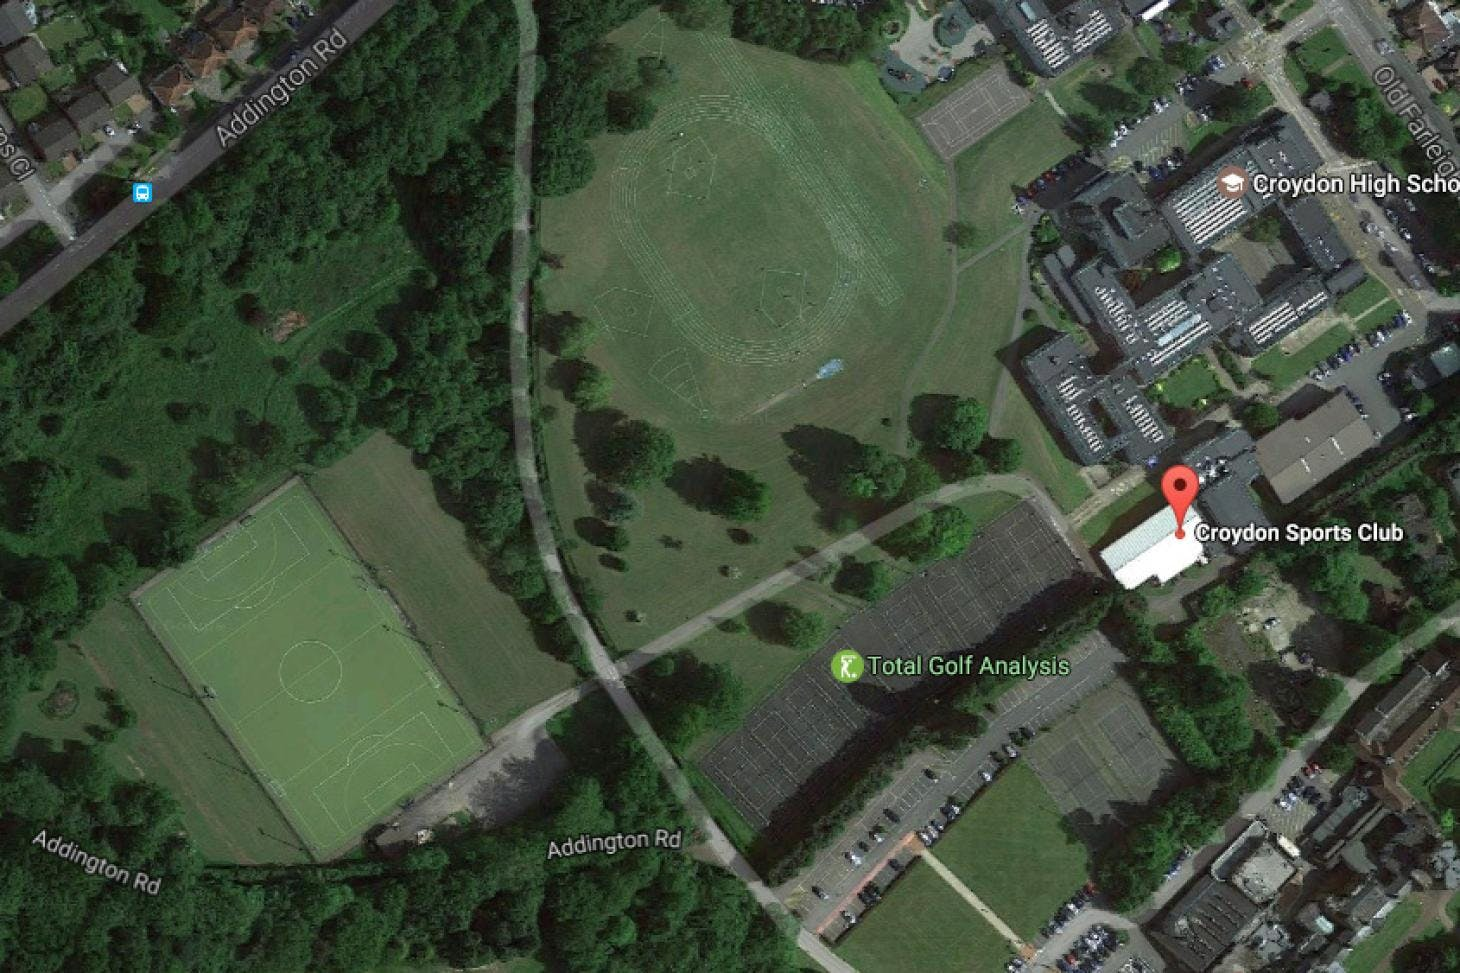 Croydon Sports Club Union | Astroturf rugby pitch